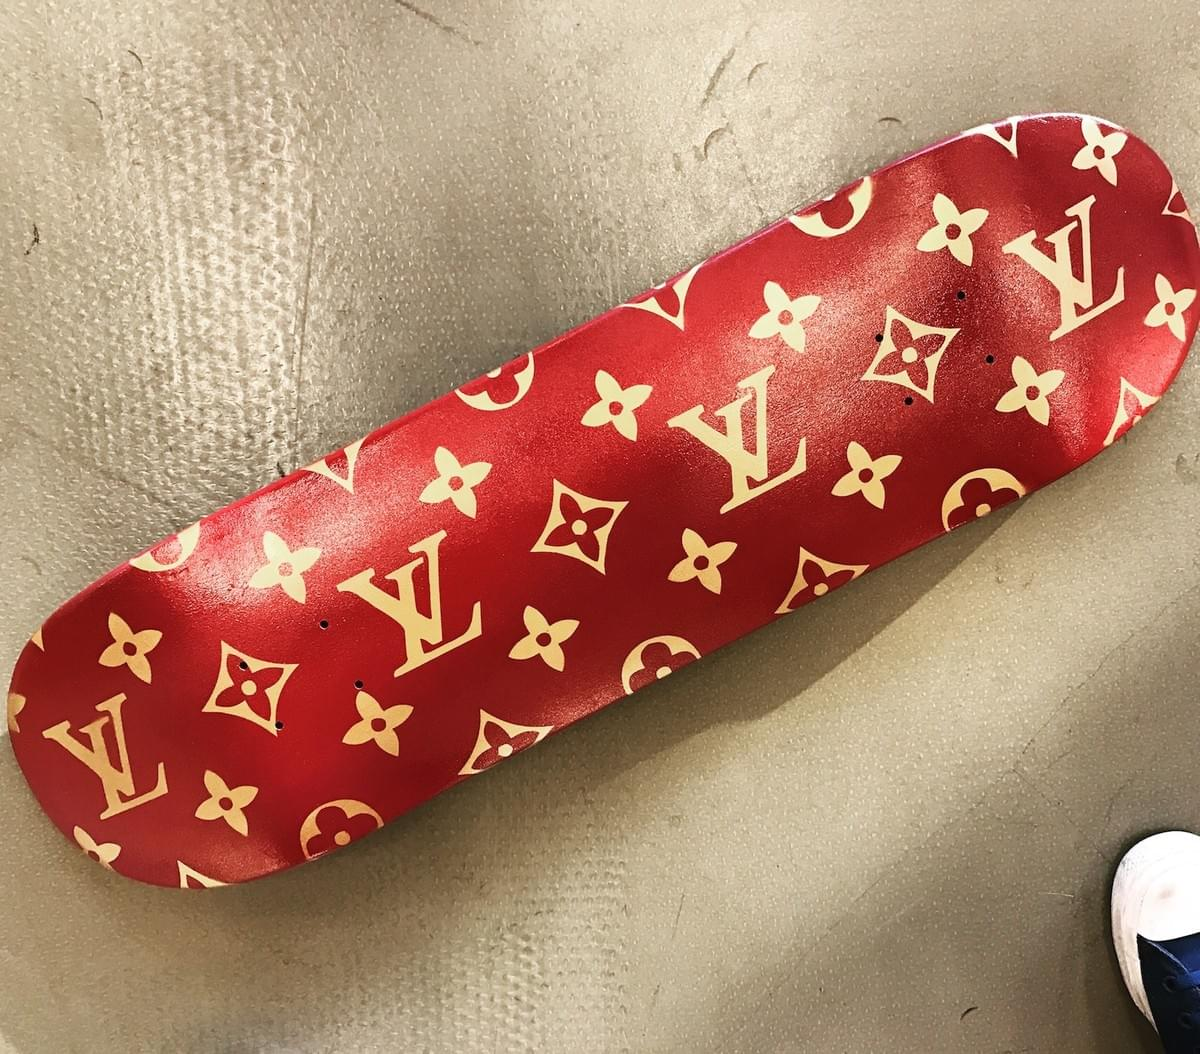 Louis Vuitton Skateboard